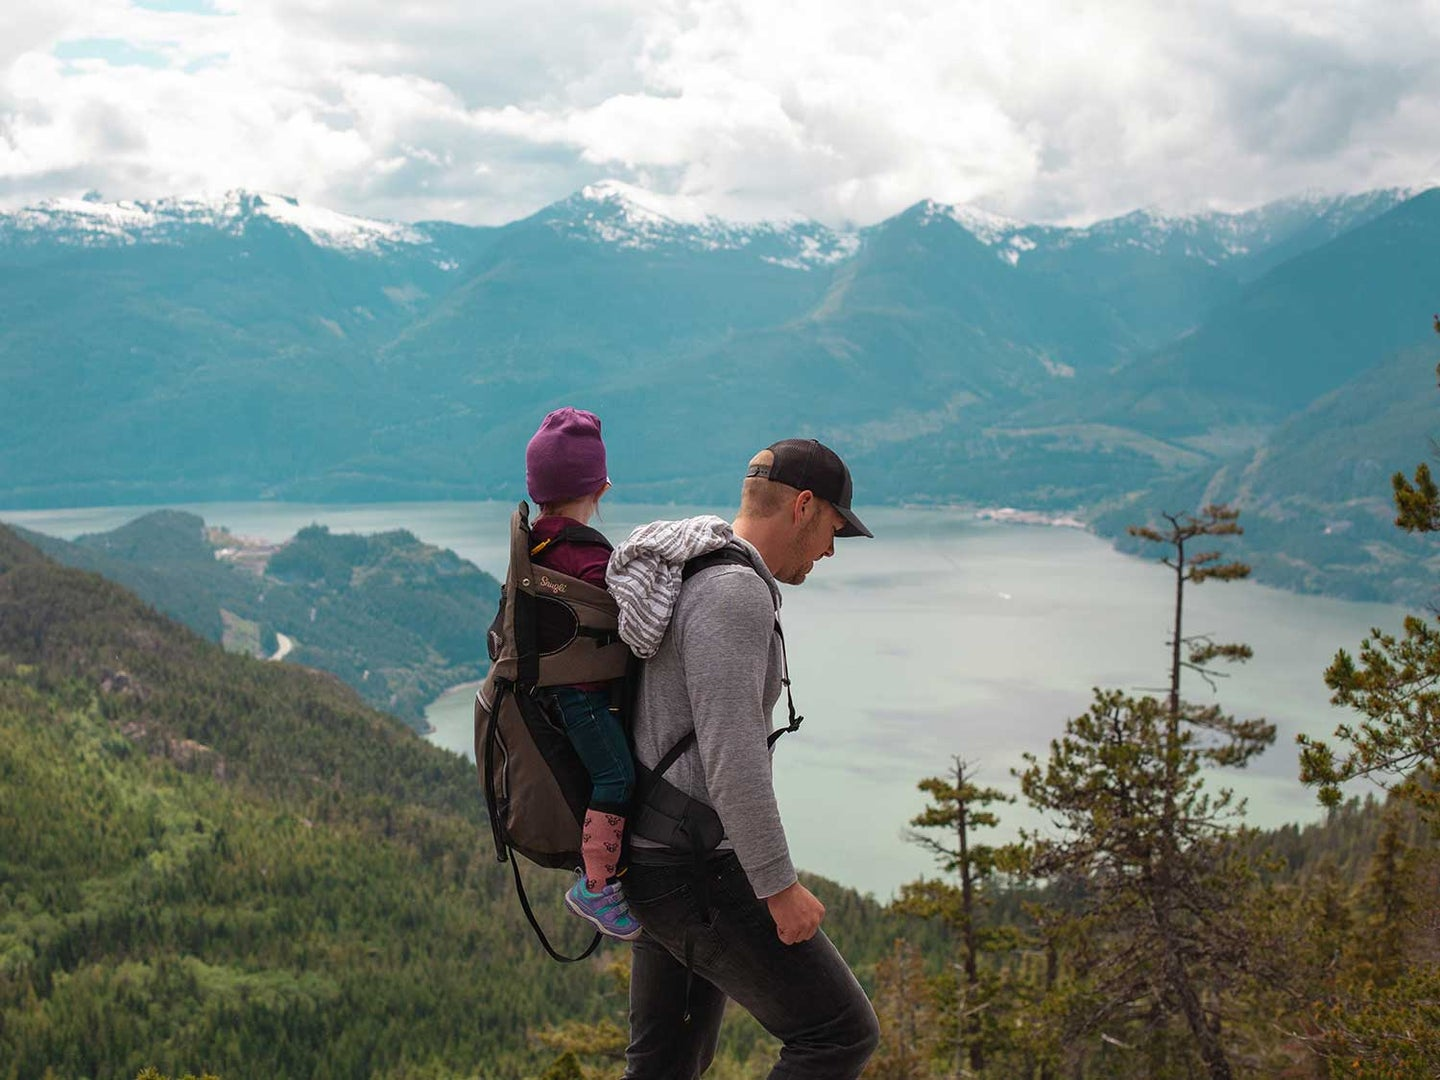 Dad hikes with kid in the mountains.